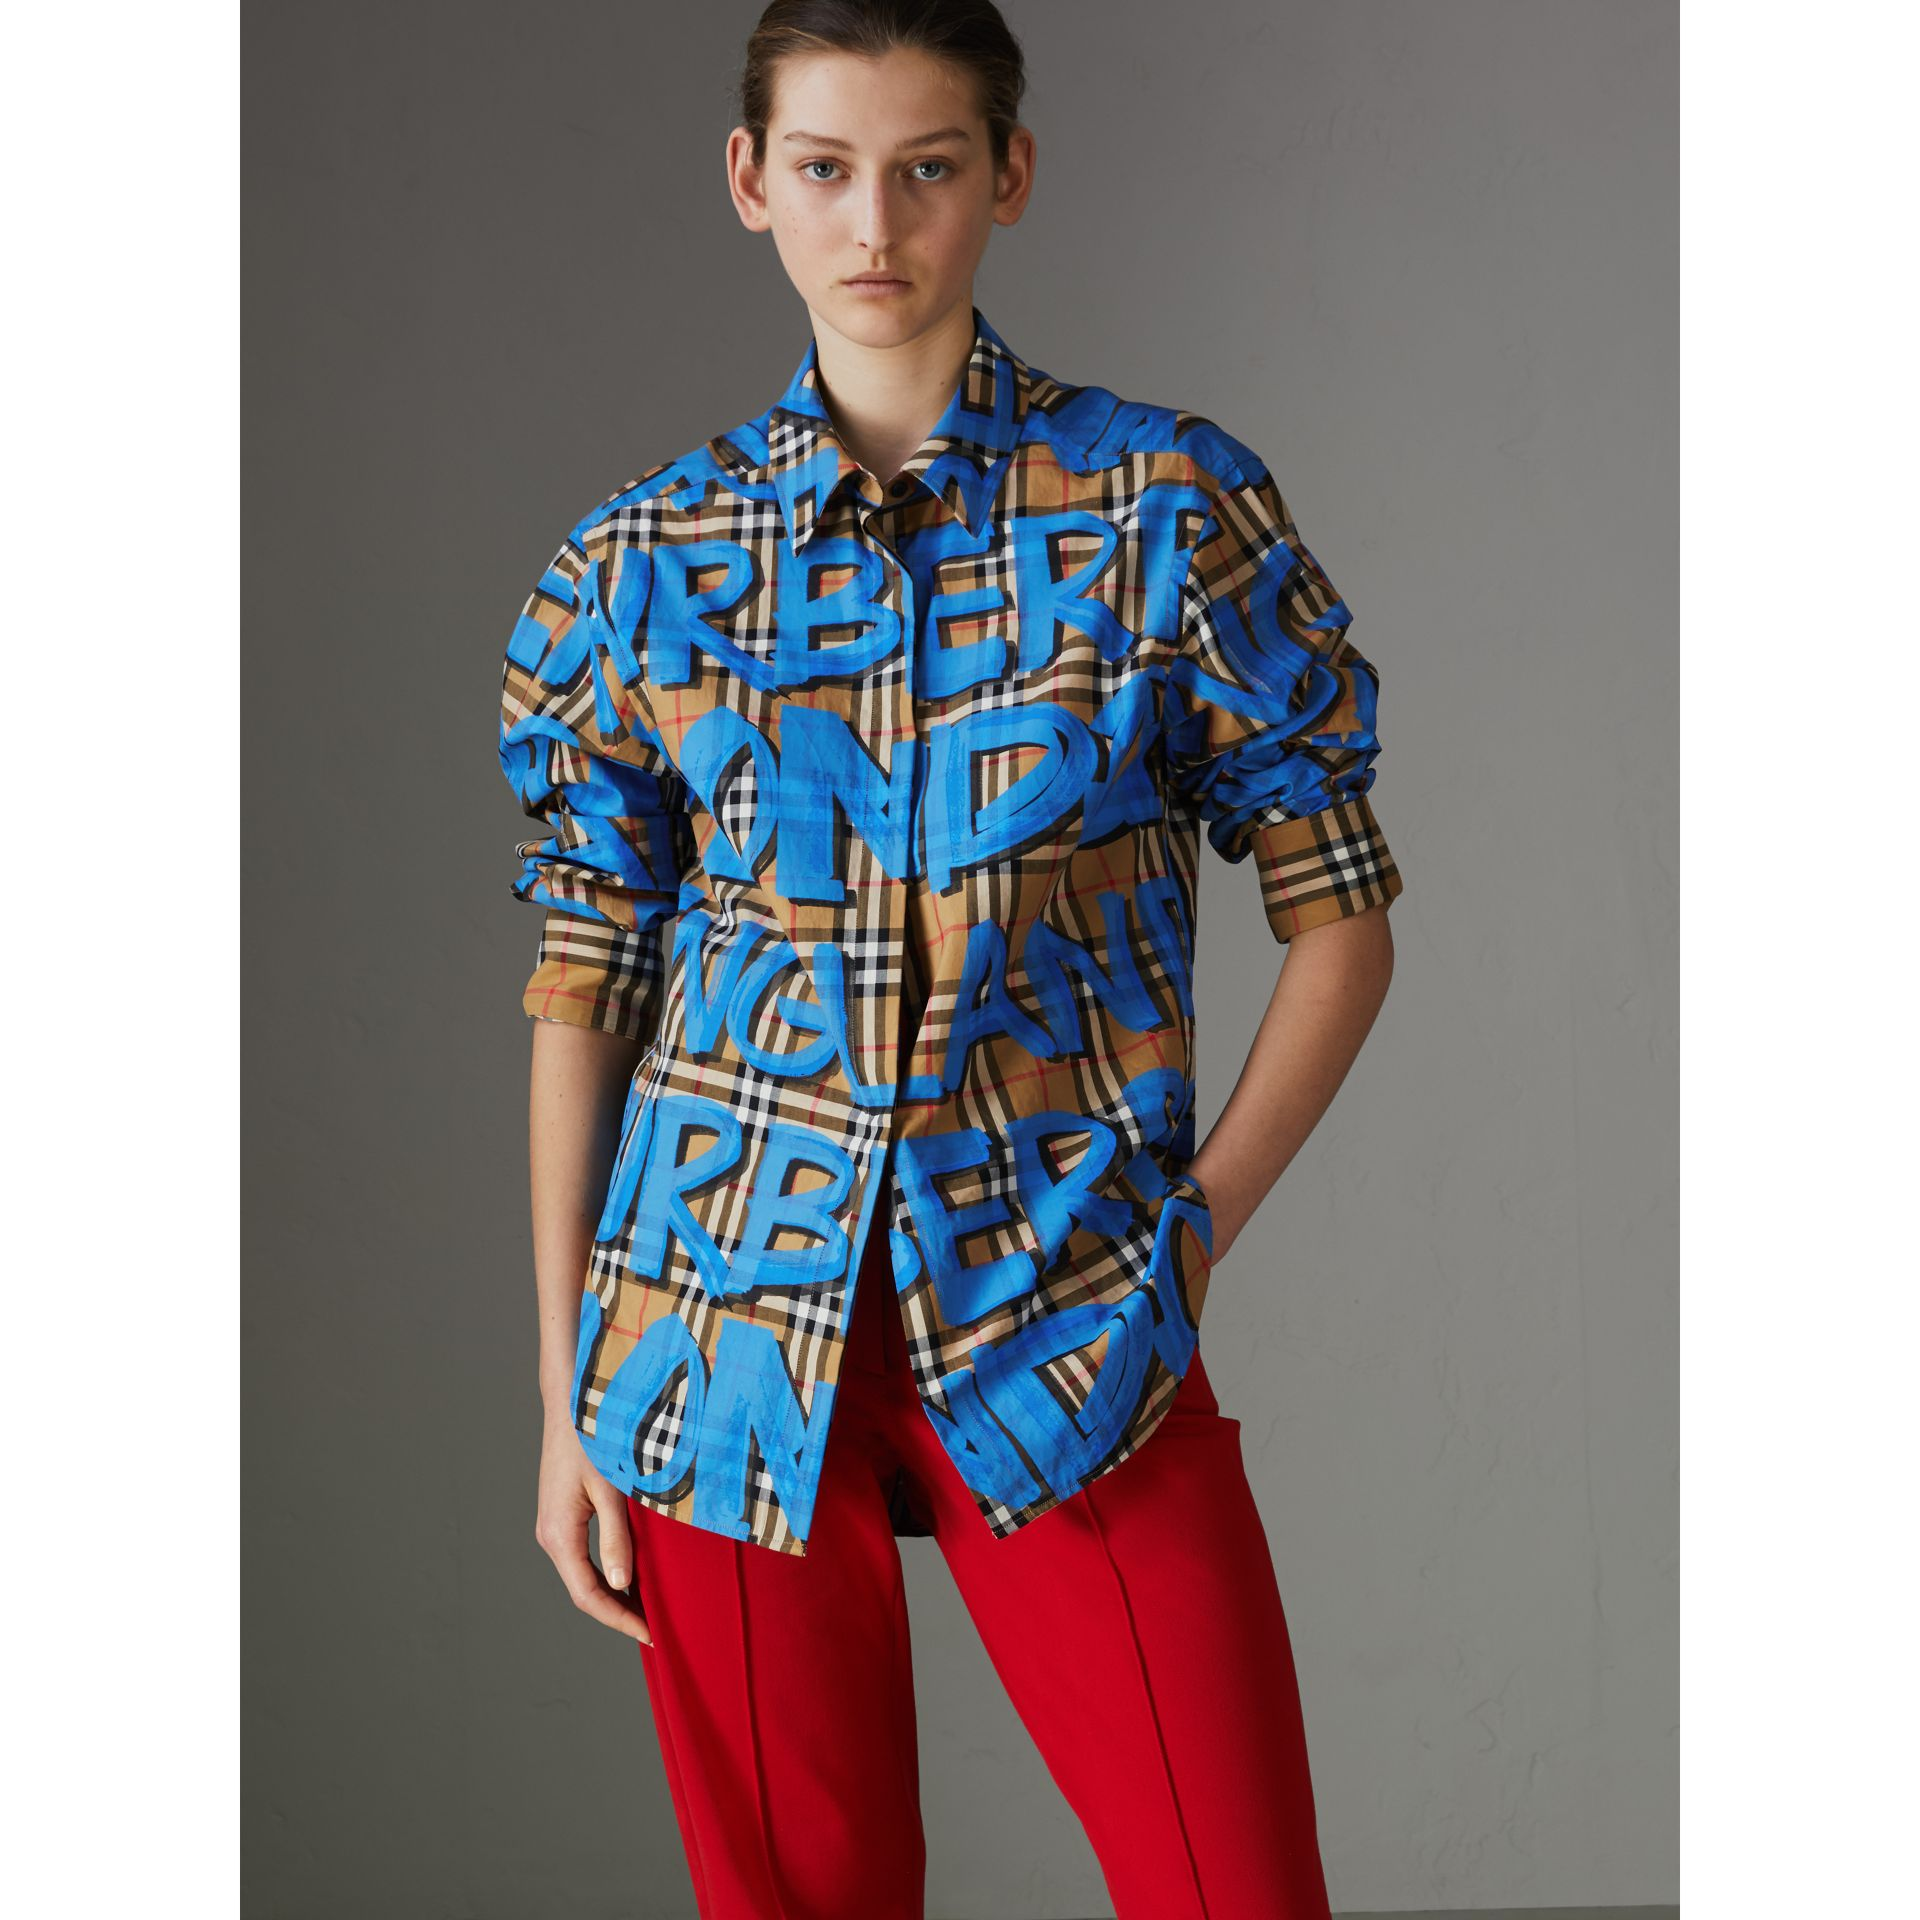 Graffiti Print Vintage Check Cotton Shirt in Bright Blue - Women | Burberry - gallery image 4